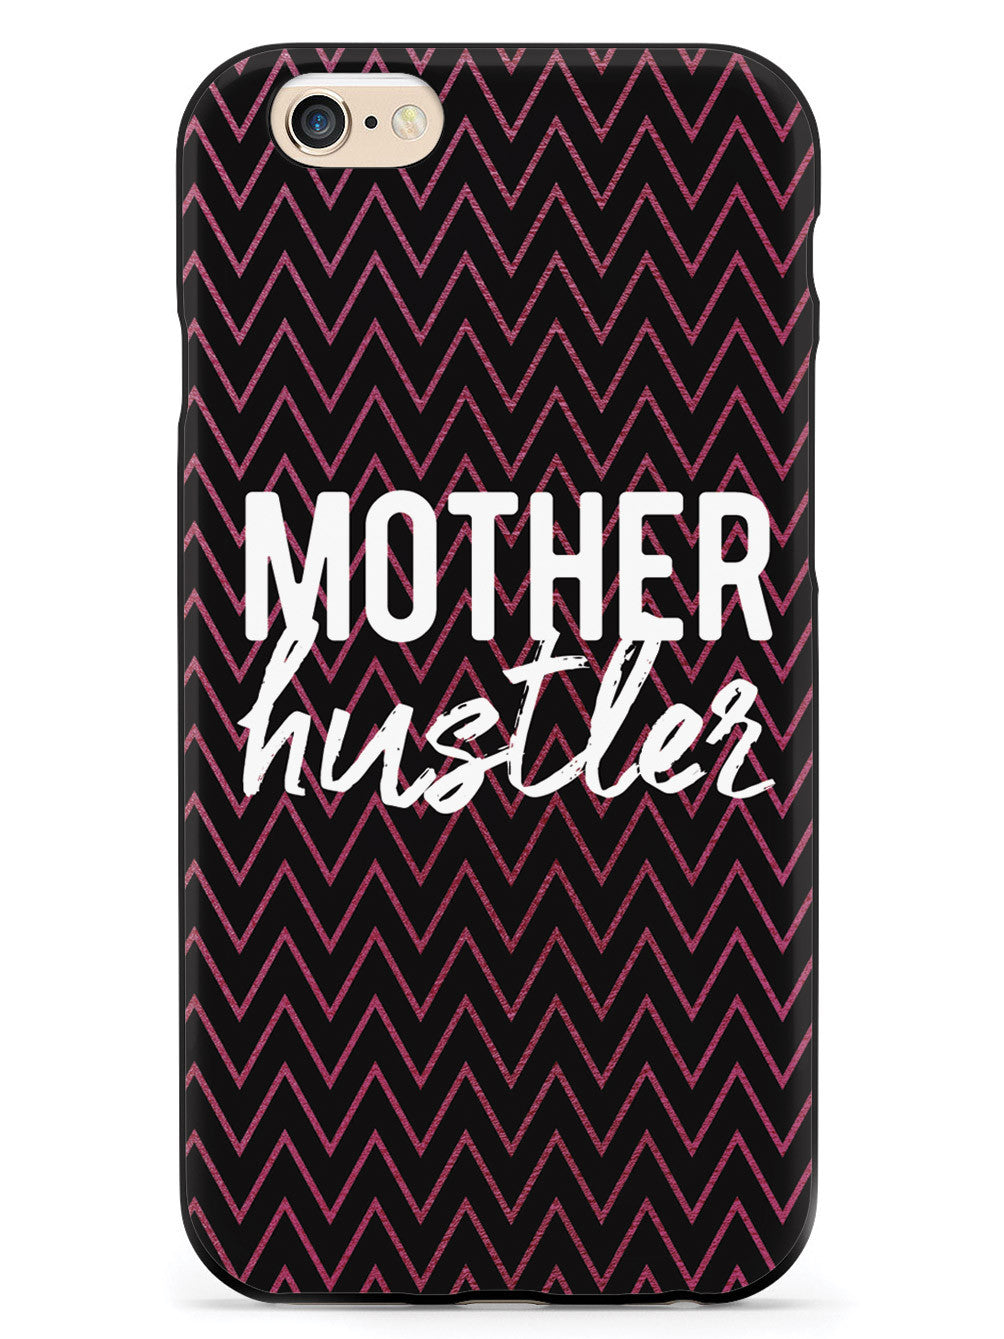 Mother Hustler - Black Case